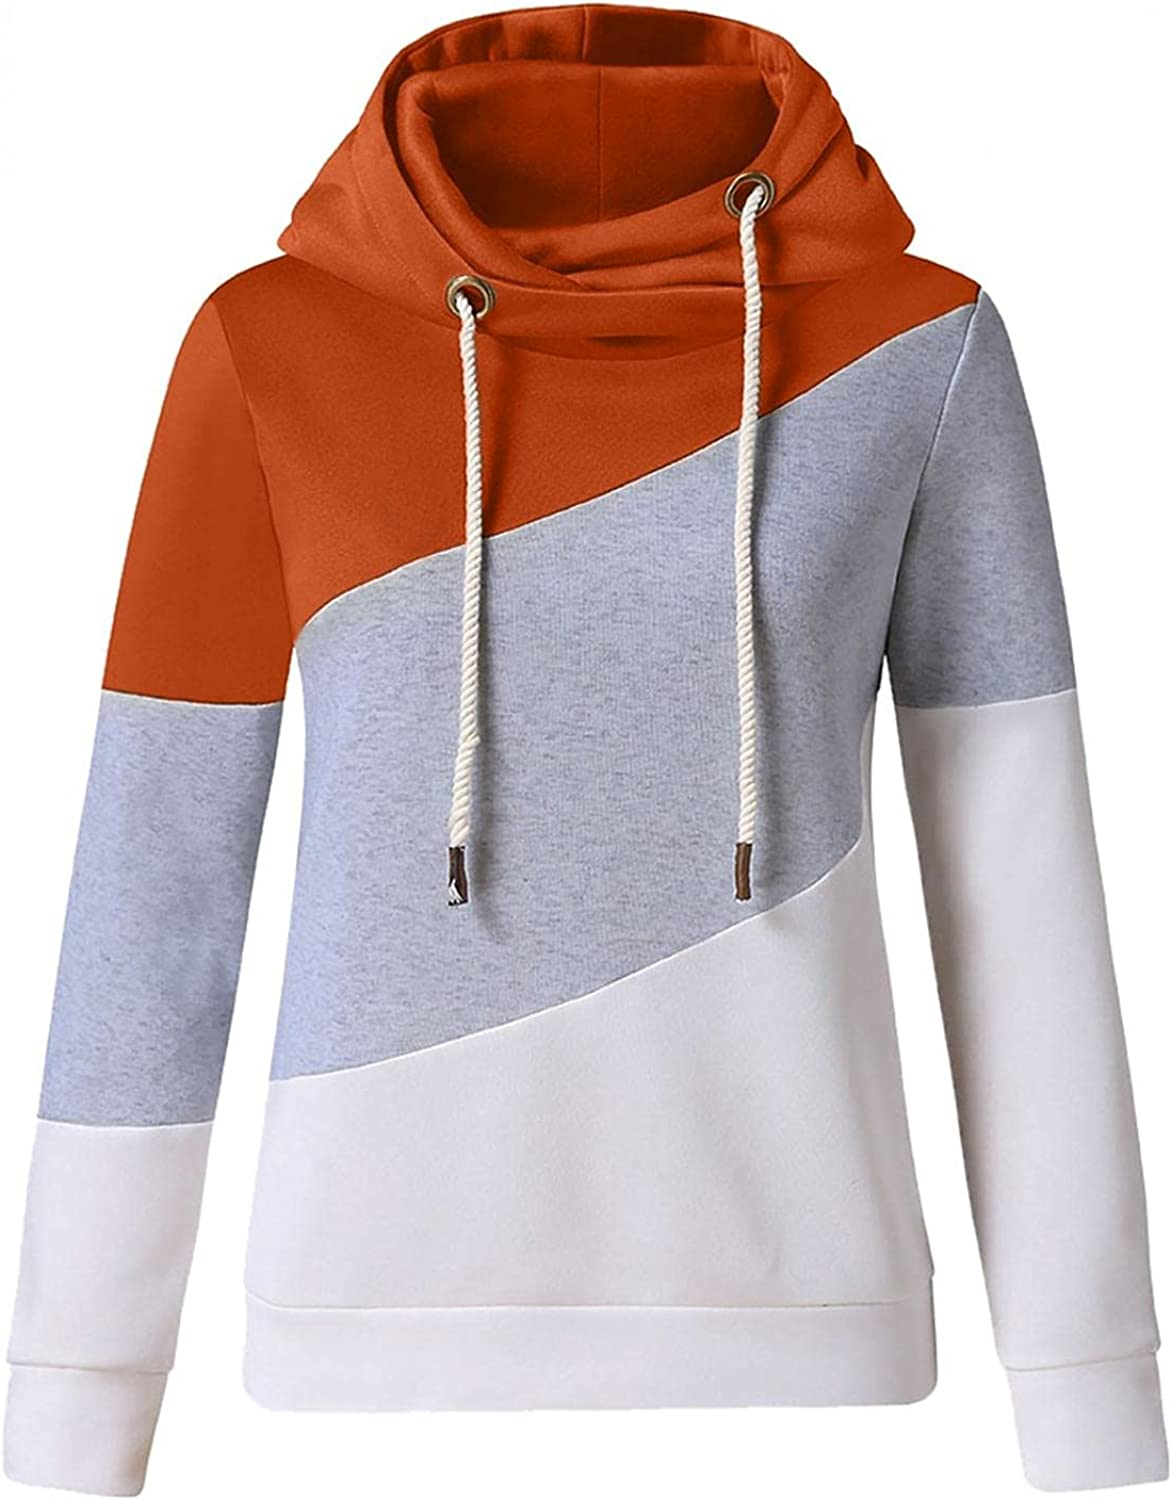 POLLYANNA KEONG Womens Hoodies Plus Size Color Block Long Sleeve Sweatshirts Loose Casual Pullover Tops Blouse